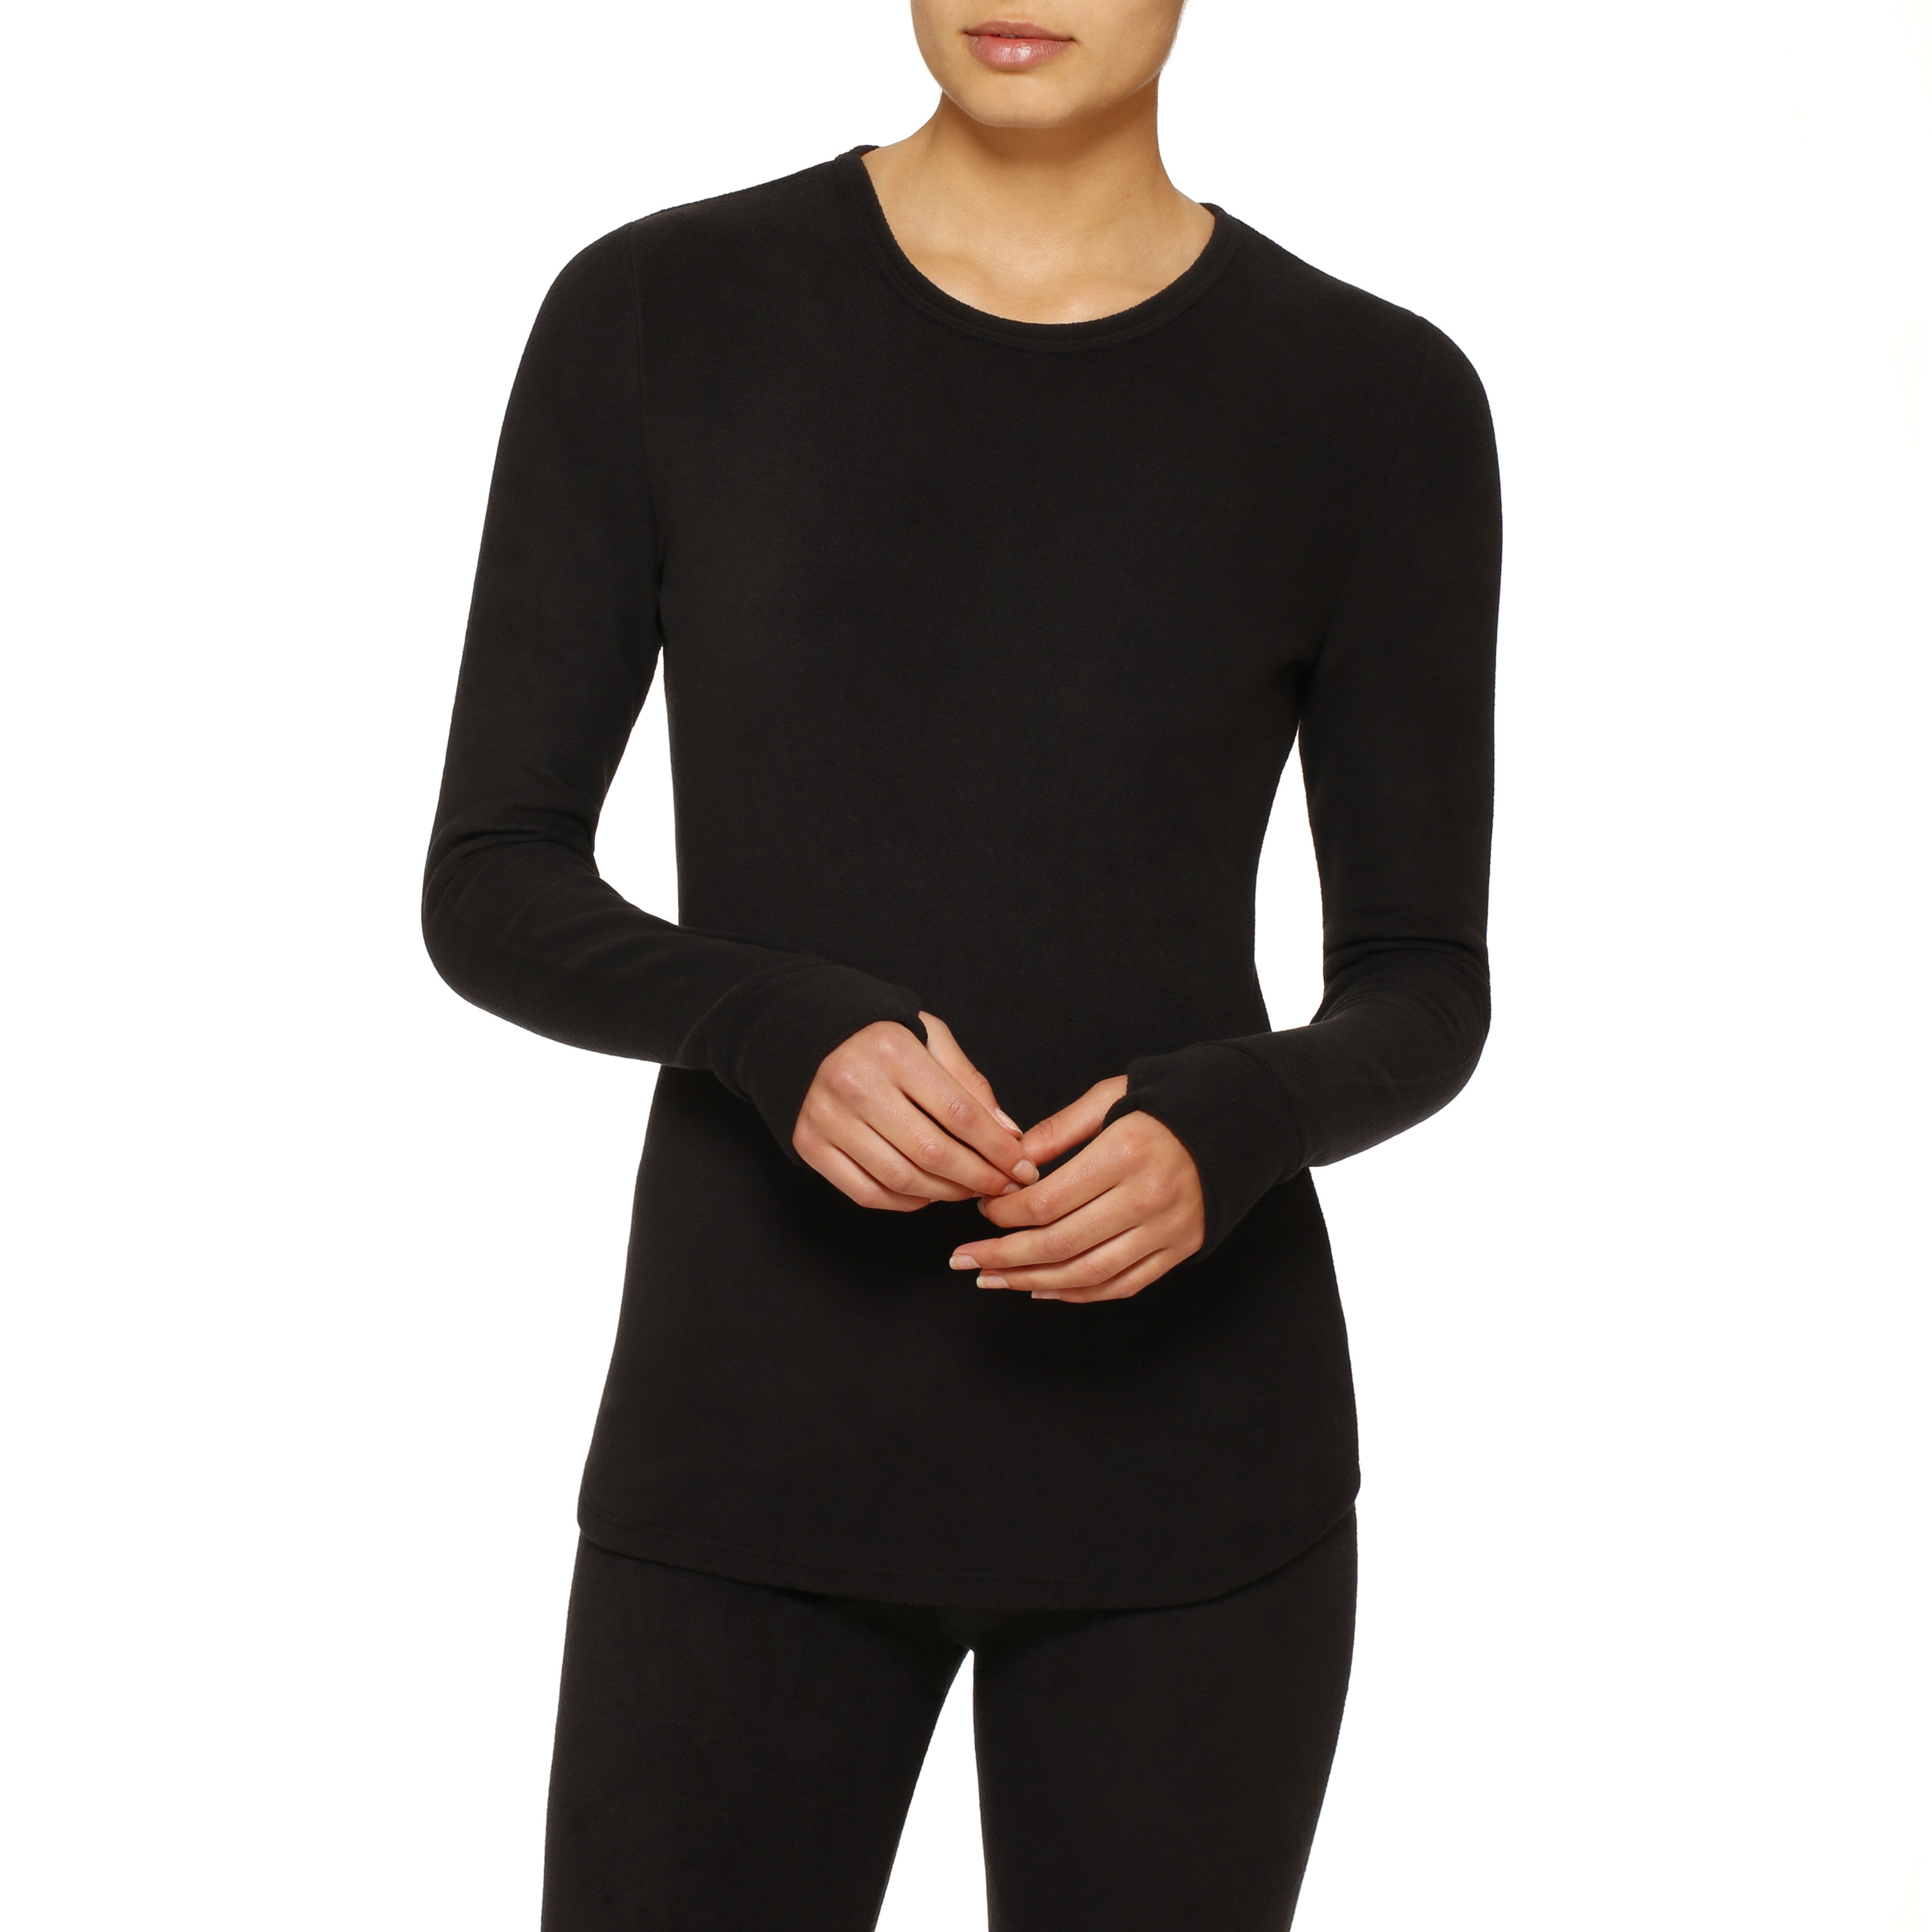 Model in stretch fleece long underwear thermal top